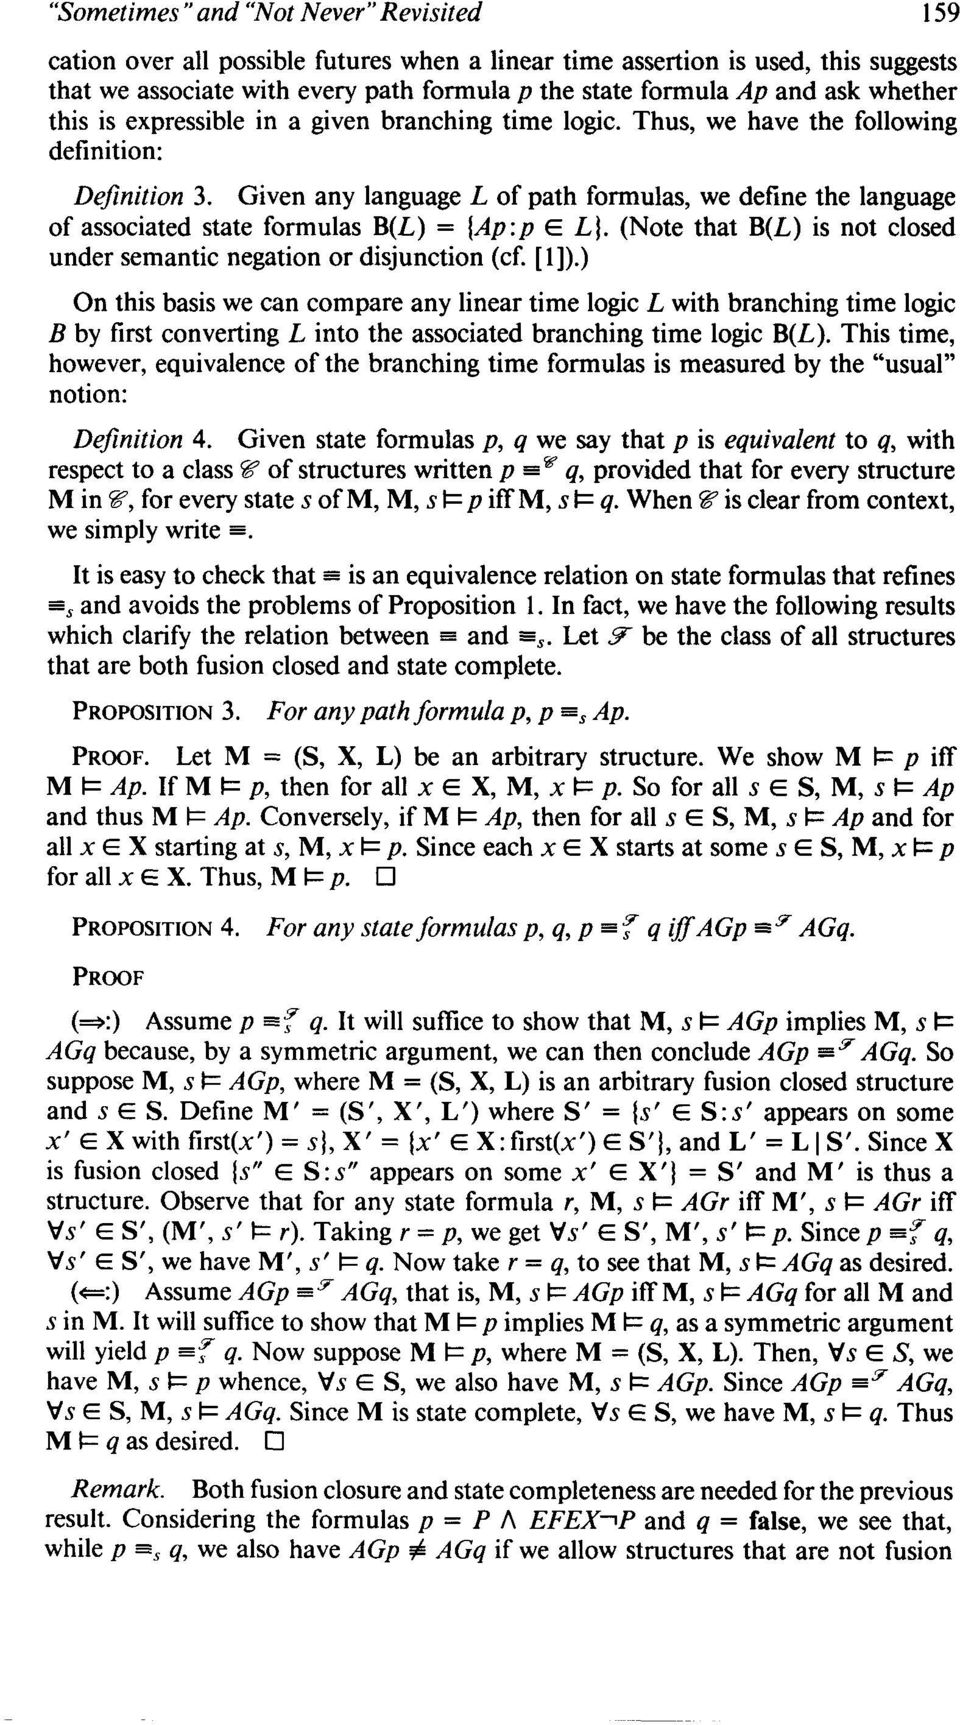 Given any language L of path formulas, we define the language of associated state formulas B(L) = (Ap:p E LJ. (Note that B(L) is not closed under semantic negation or disjunction (cf. [l]).